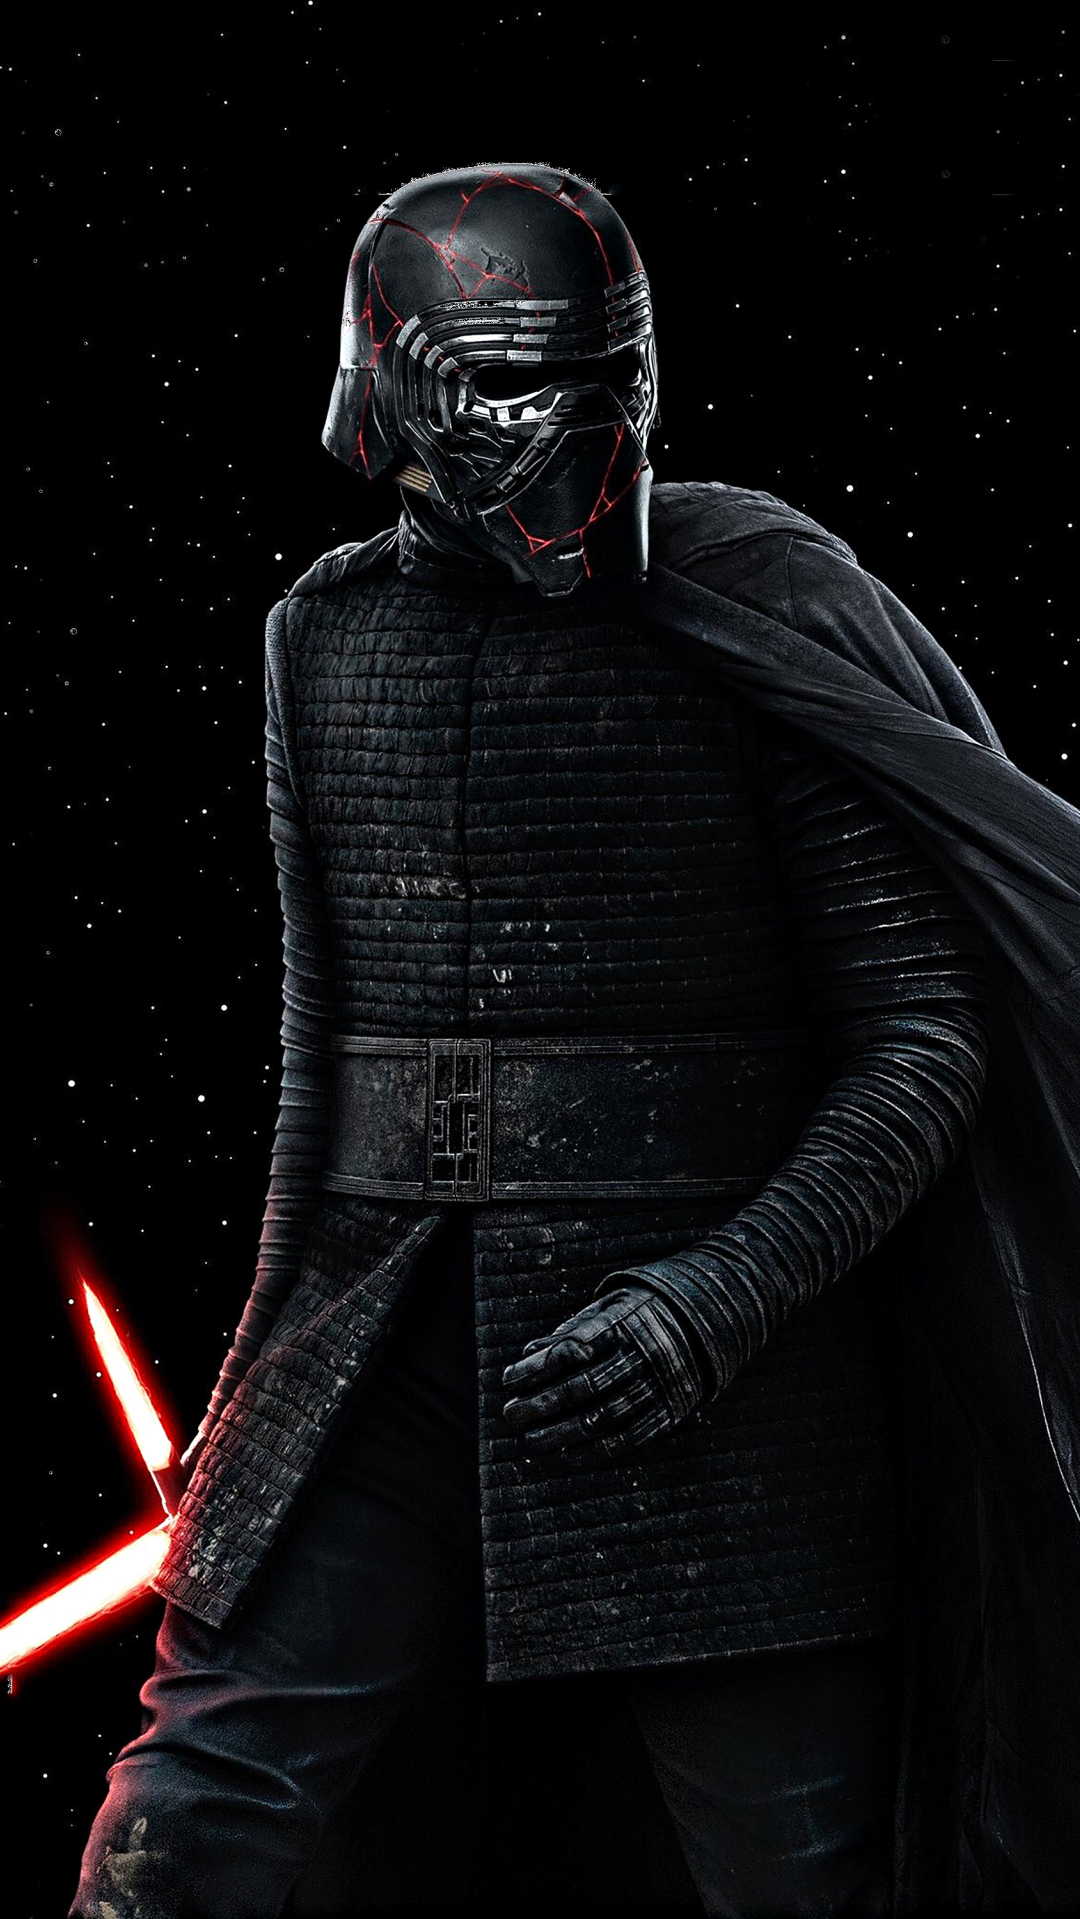 1080x1920 Cool Darth Vader Iphone 7, 6s, 6 Plus and Pixel ...